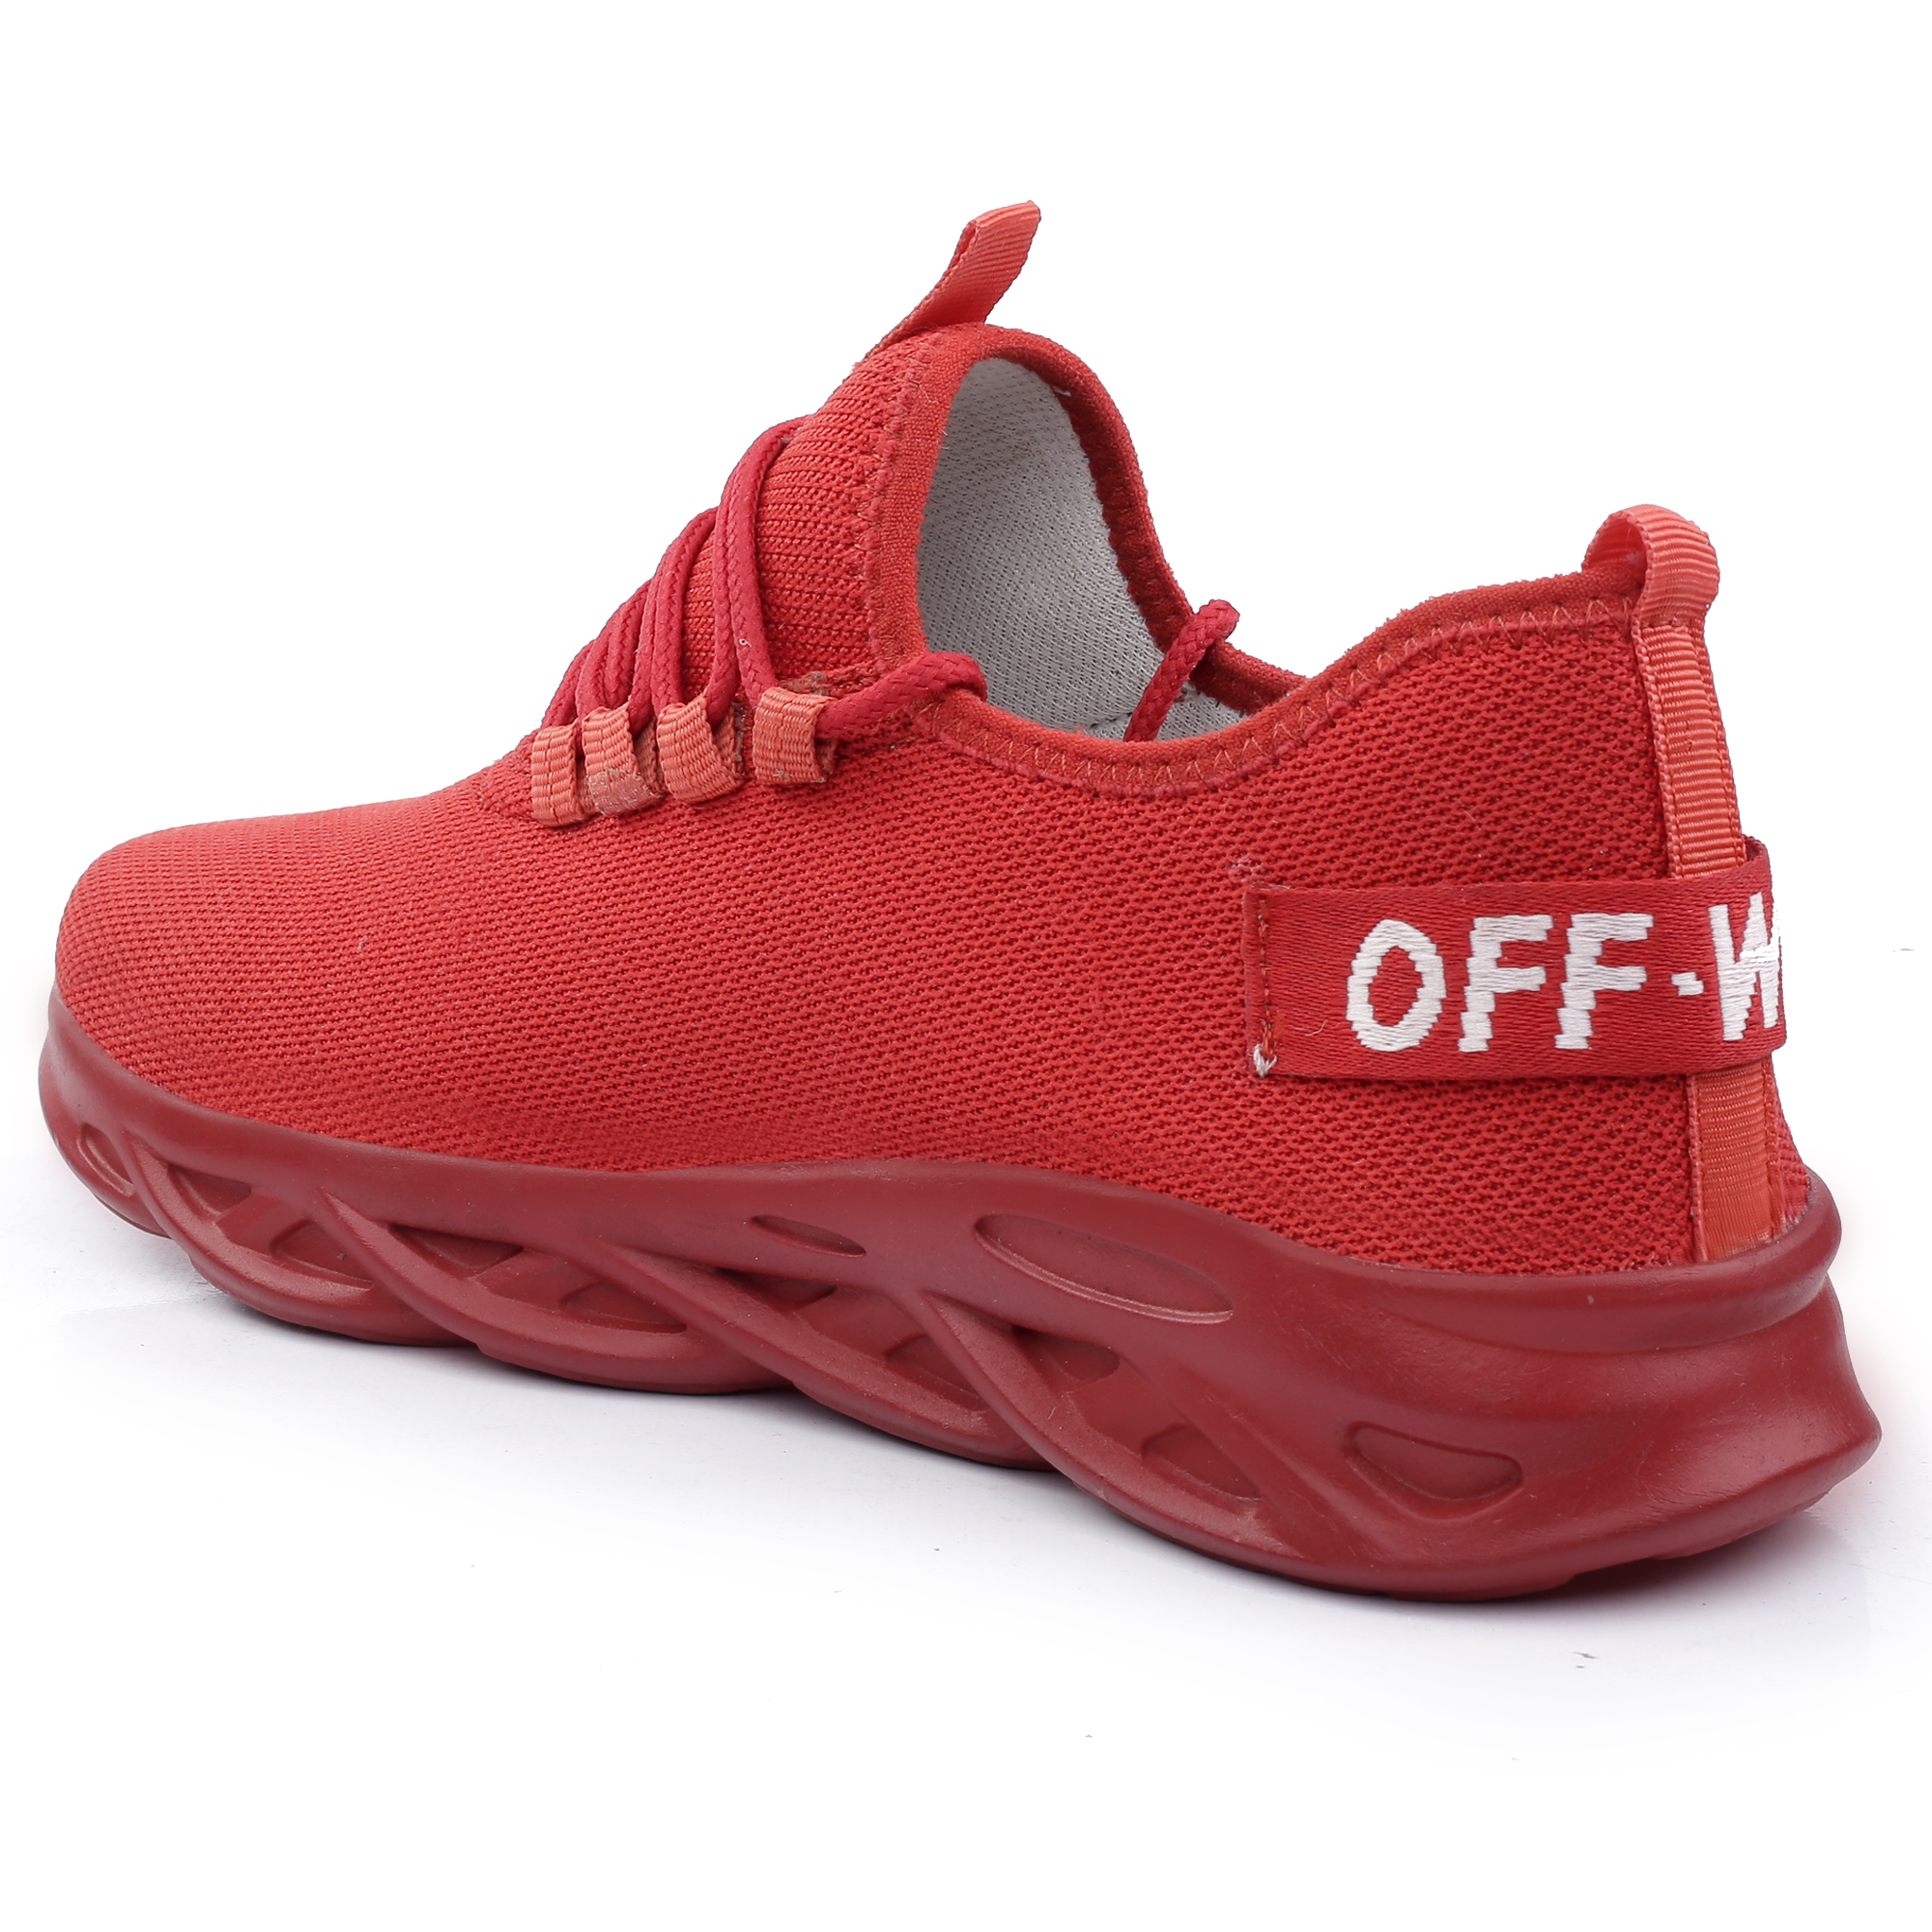 IMC671.101_RD FANCY & COMFORTABLE FLEXIBLE SPORT SHOE FOR MEN IMC671.101_RD (RED, 6TO9, 4 PAIRS)